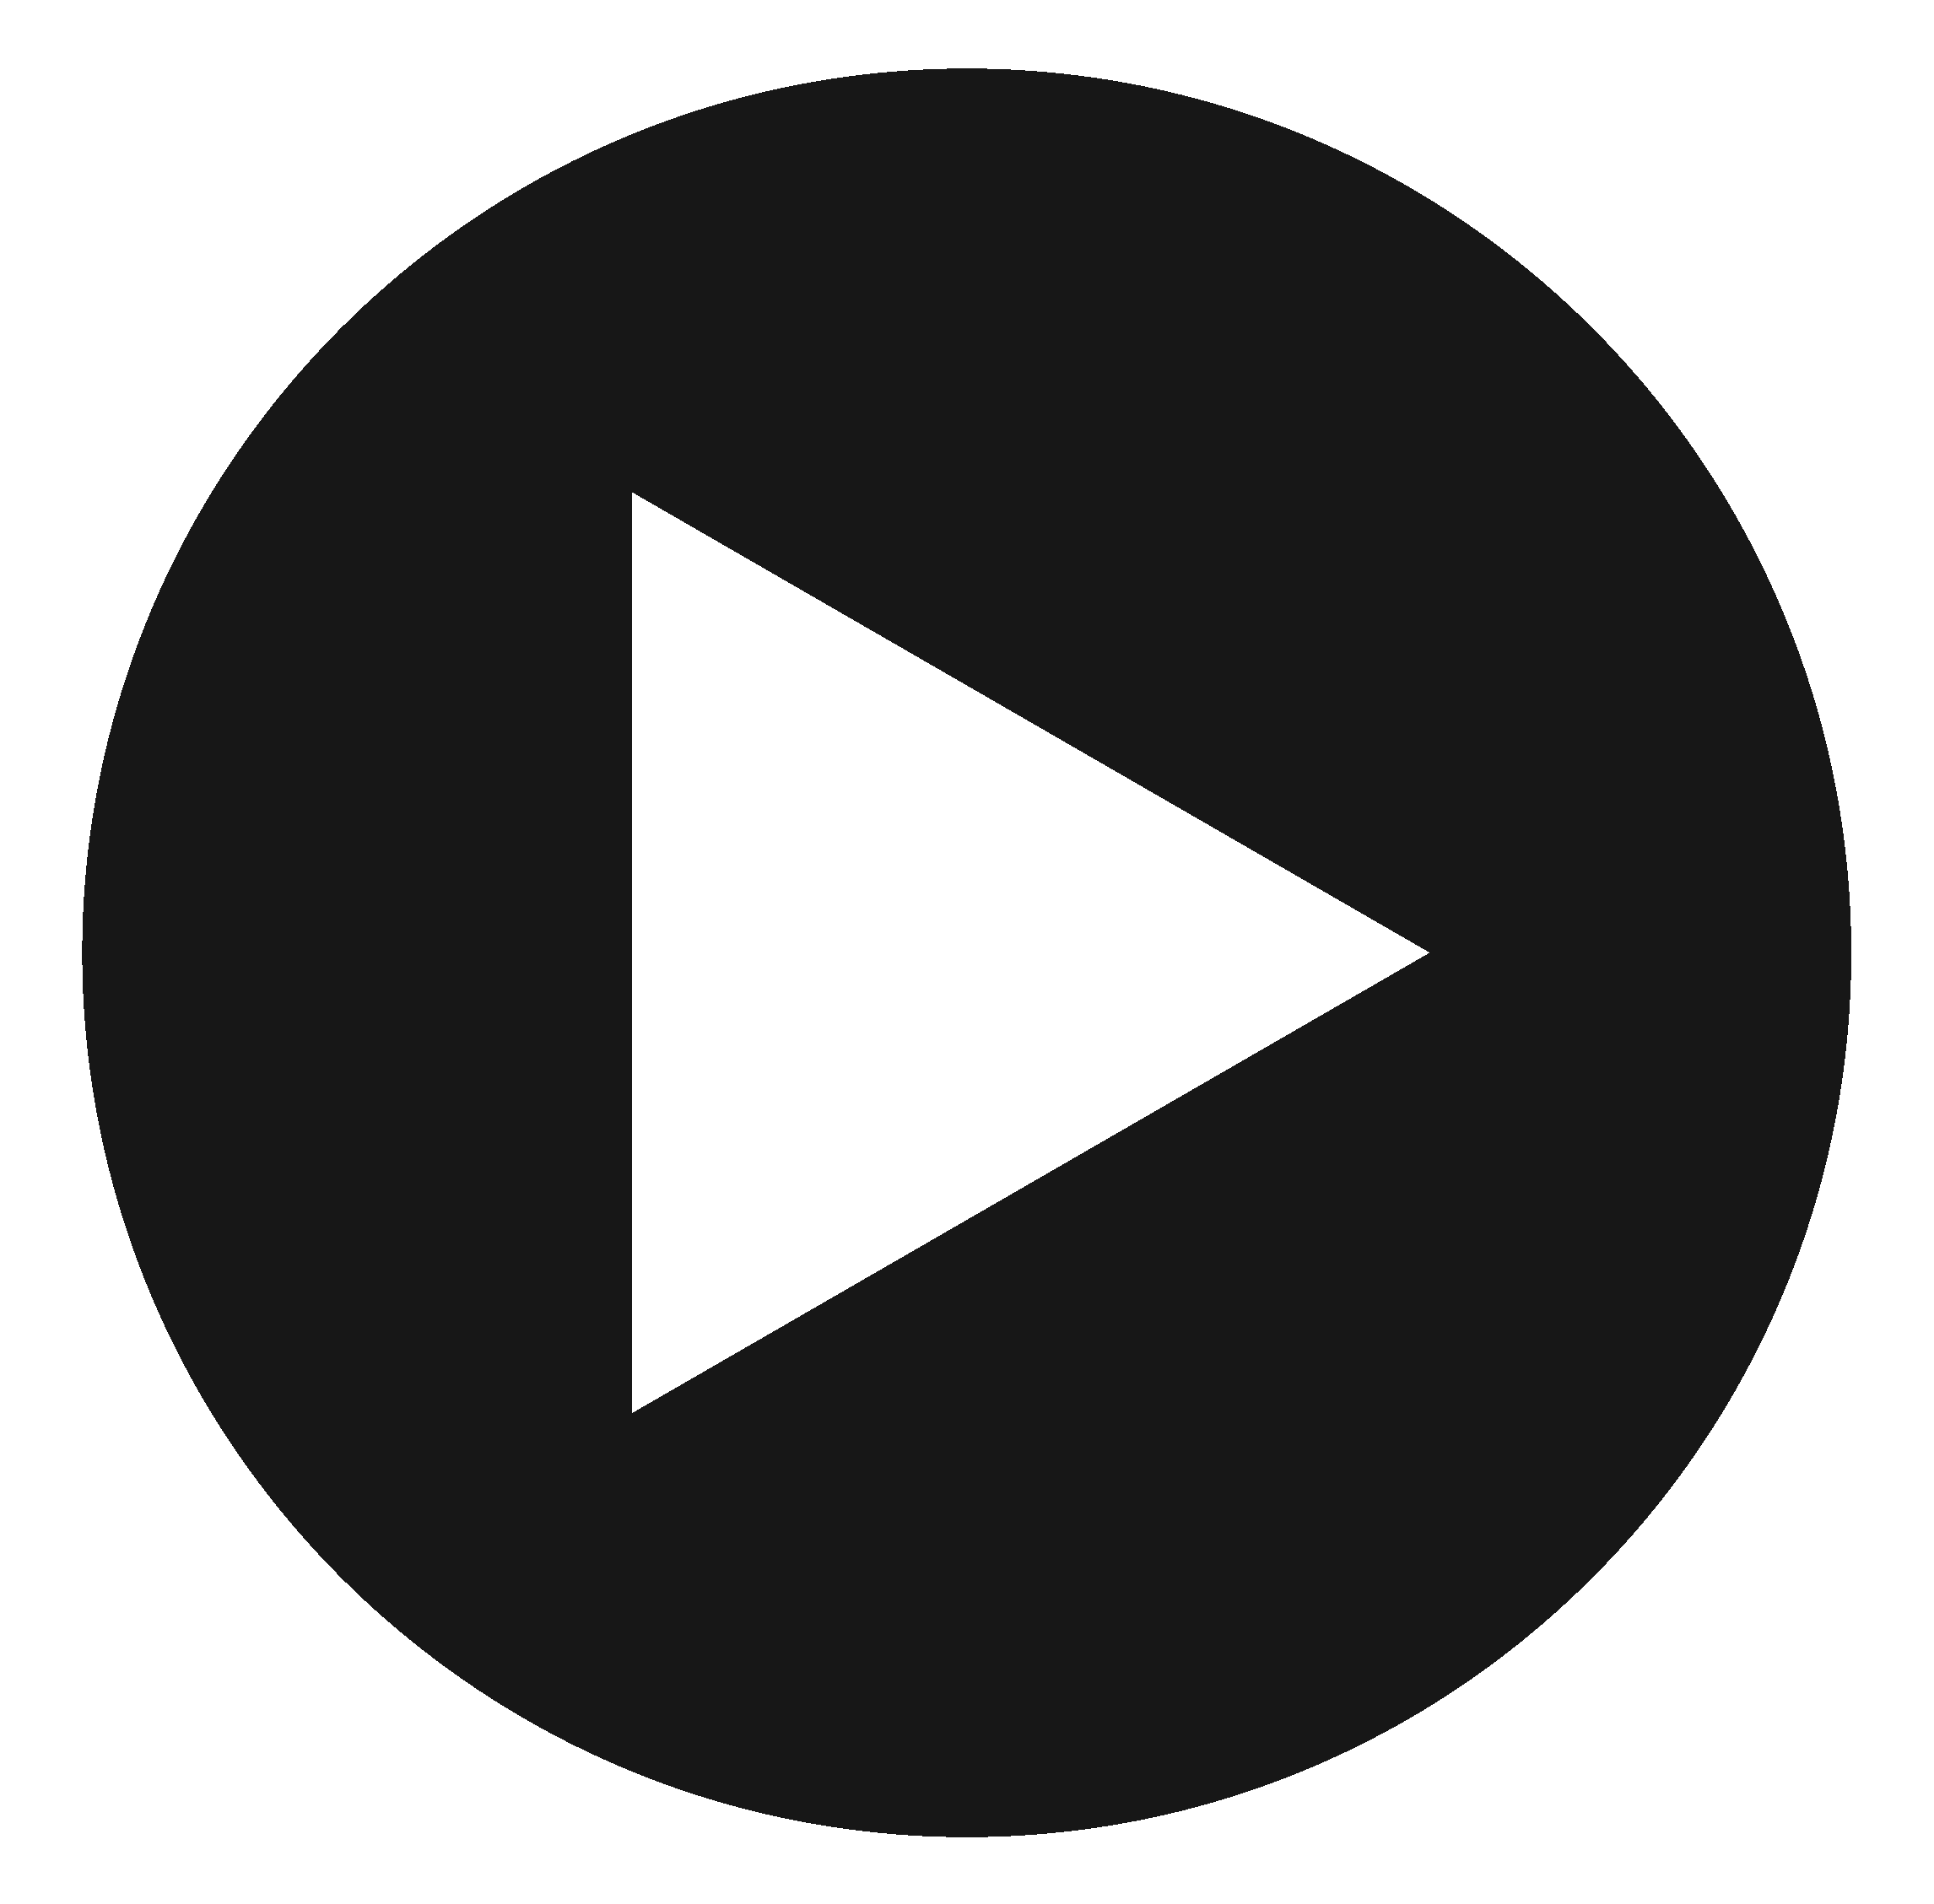 Play Button Cut Out Png 8 12810